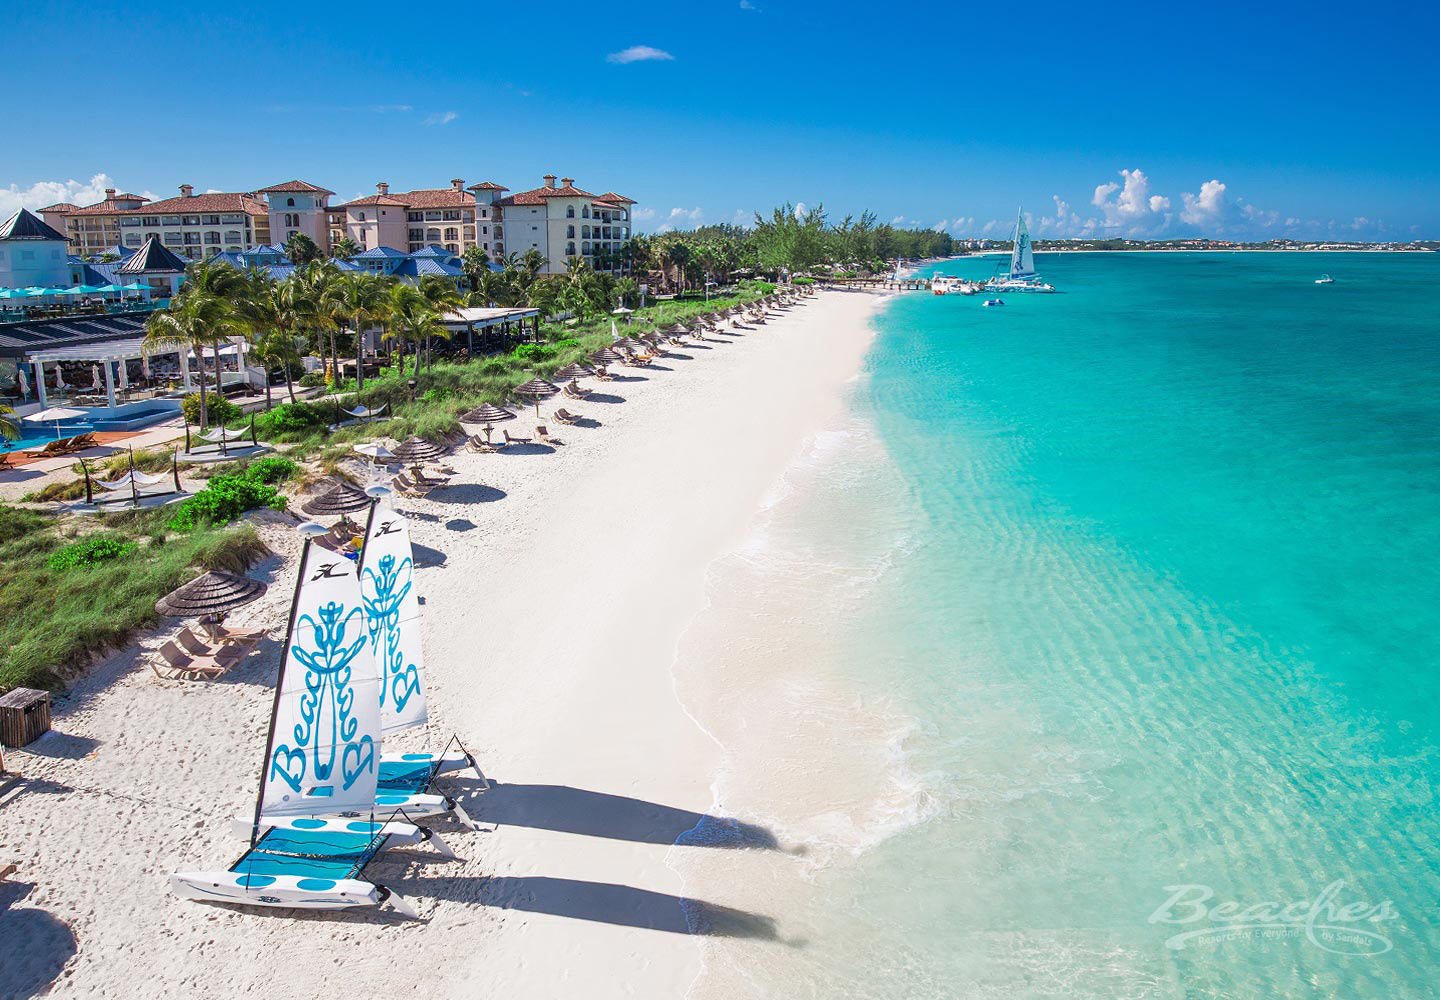 Travel Agency All-Inclusive Resort Beaches Turks and Caicos 153